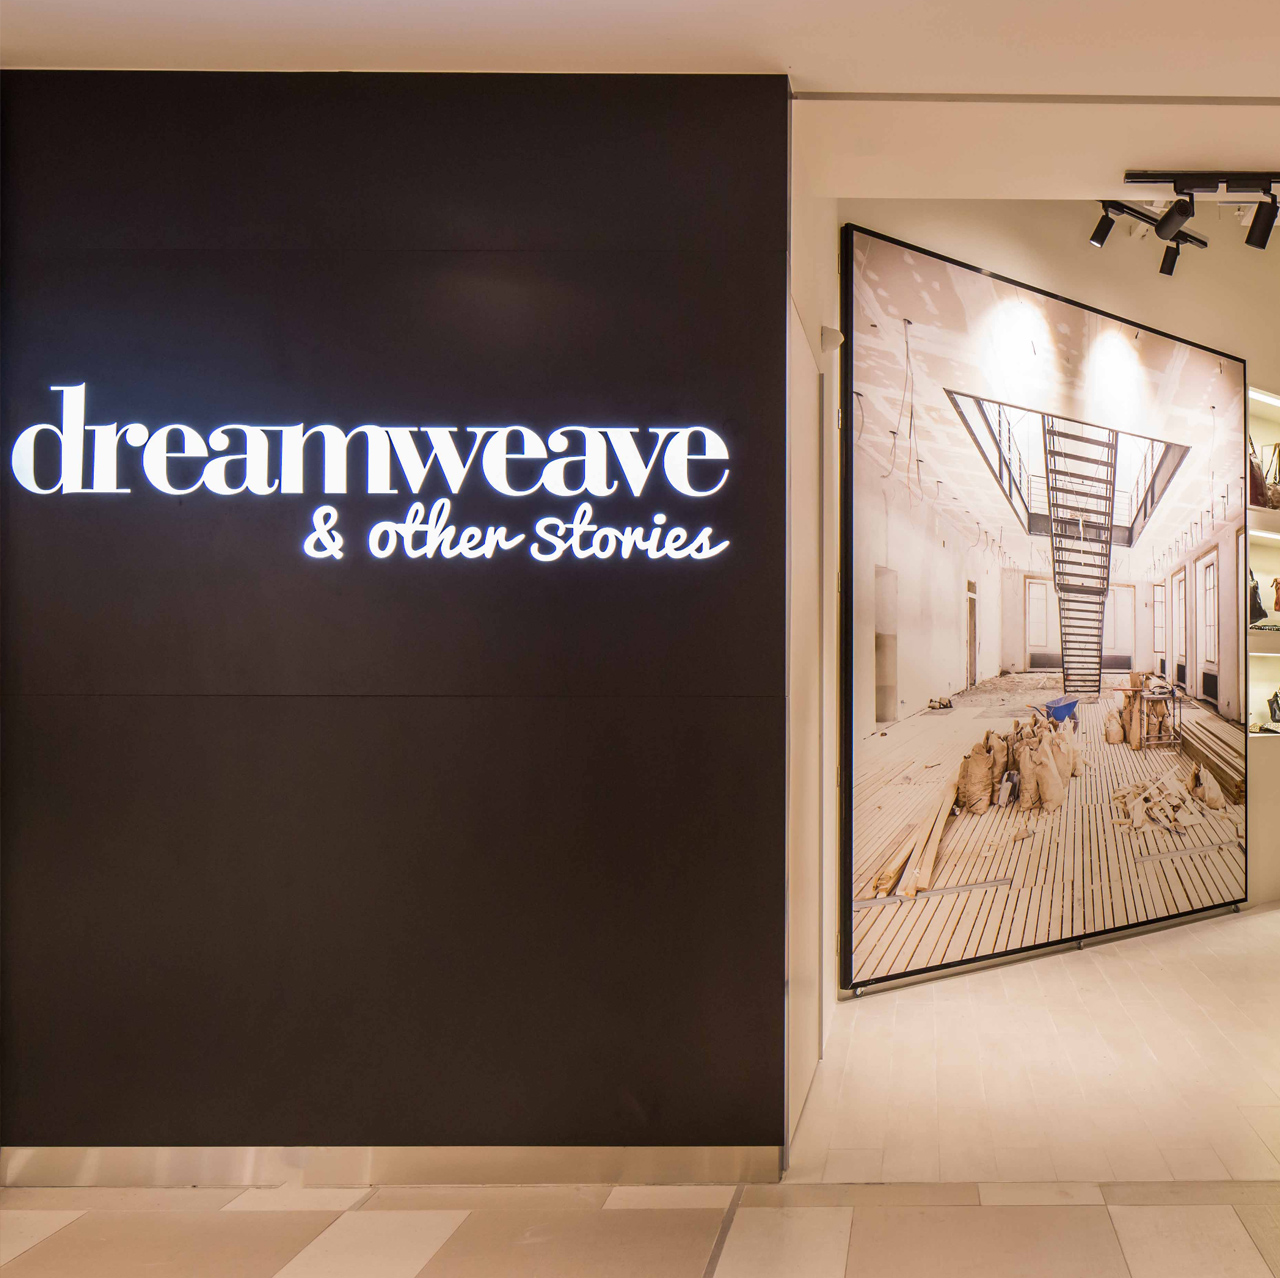 Dreamweave and other stories